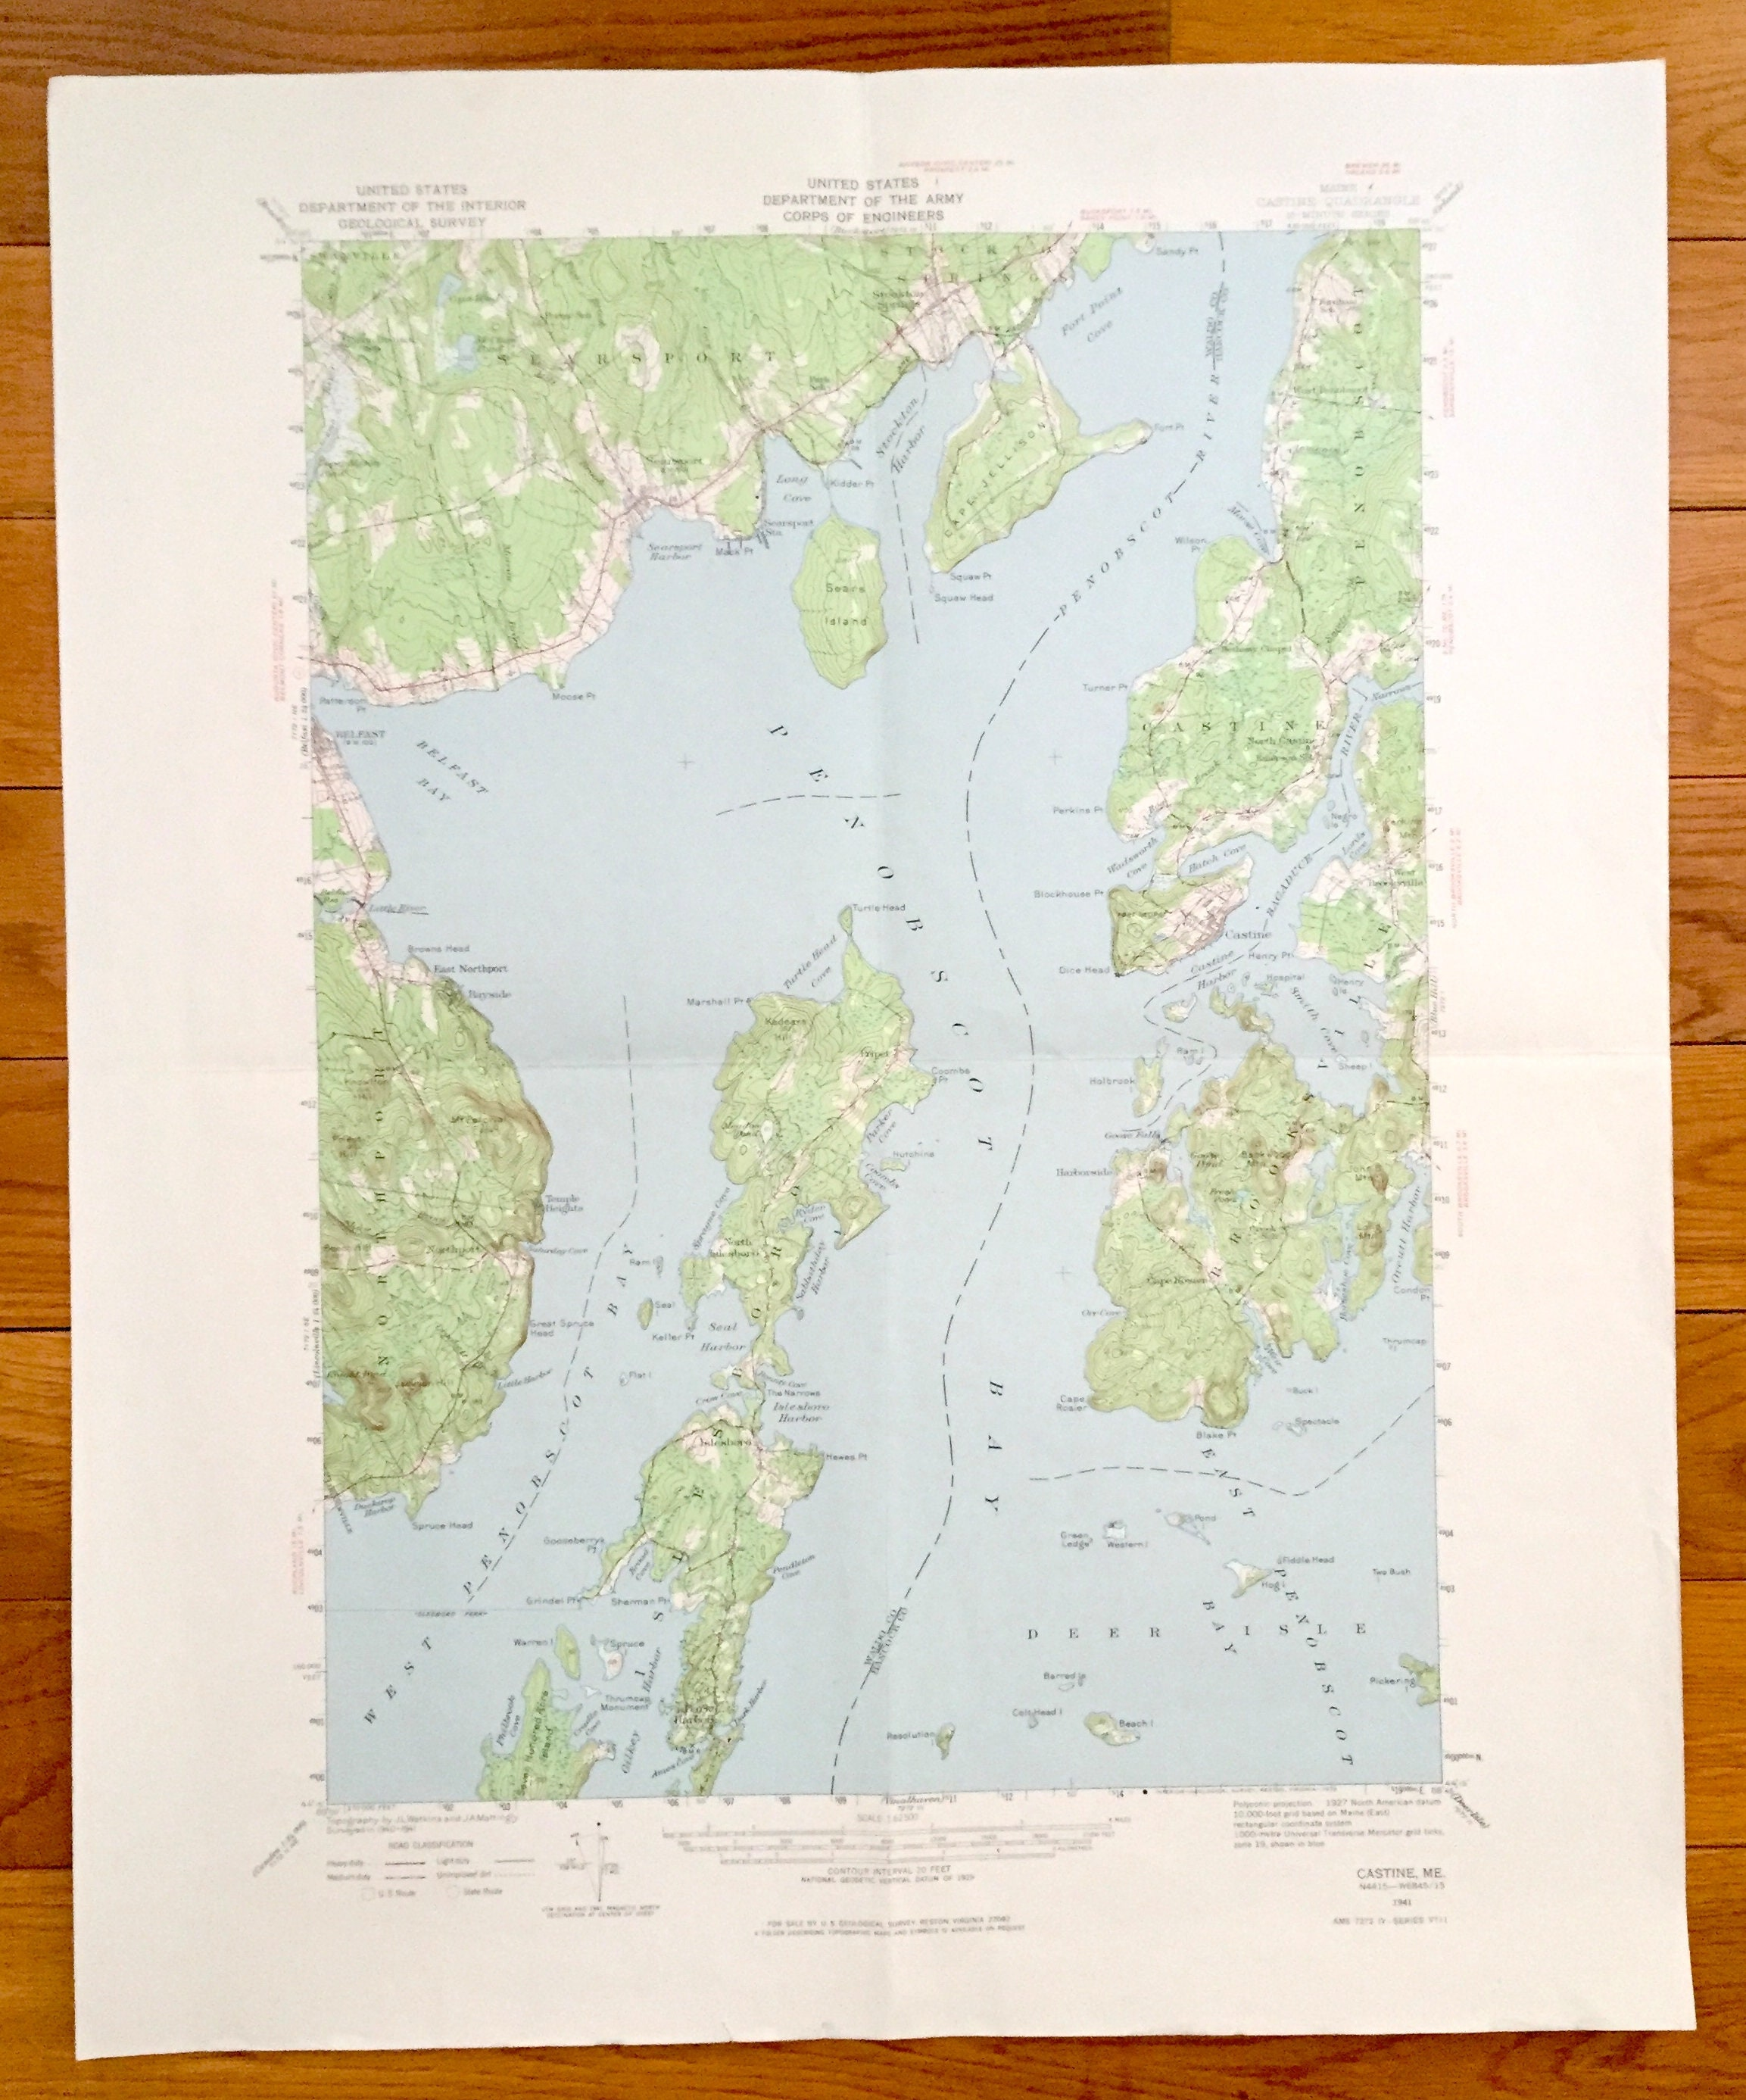 Antique Penobscot Bay Maine 1941 Us Geological Survey Etsy